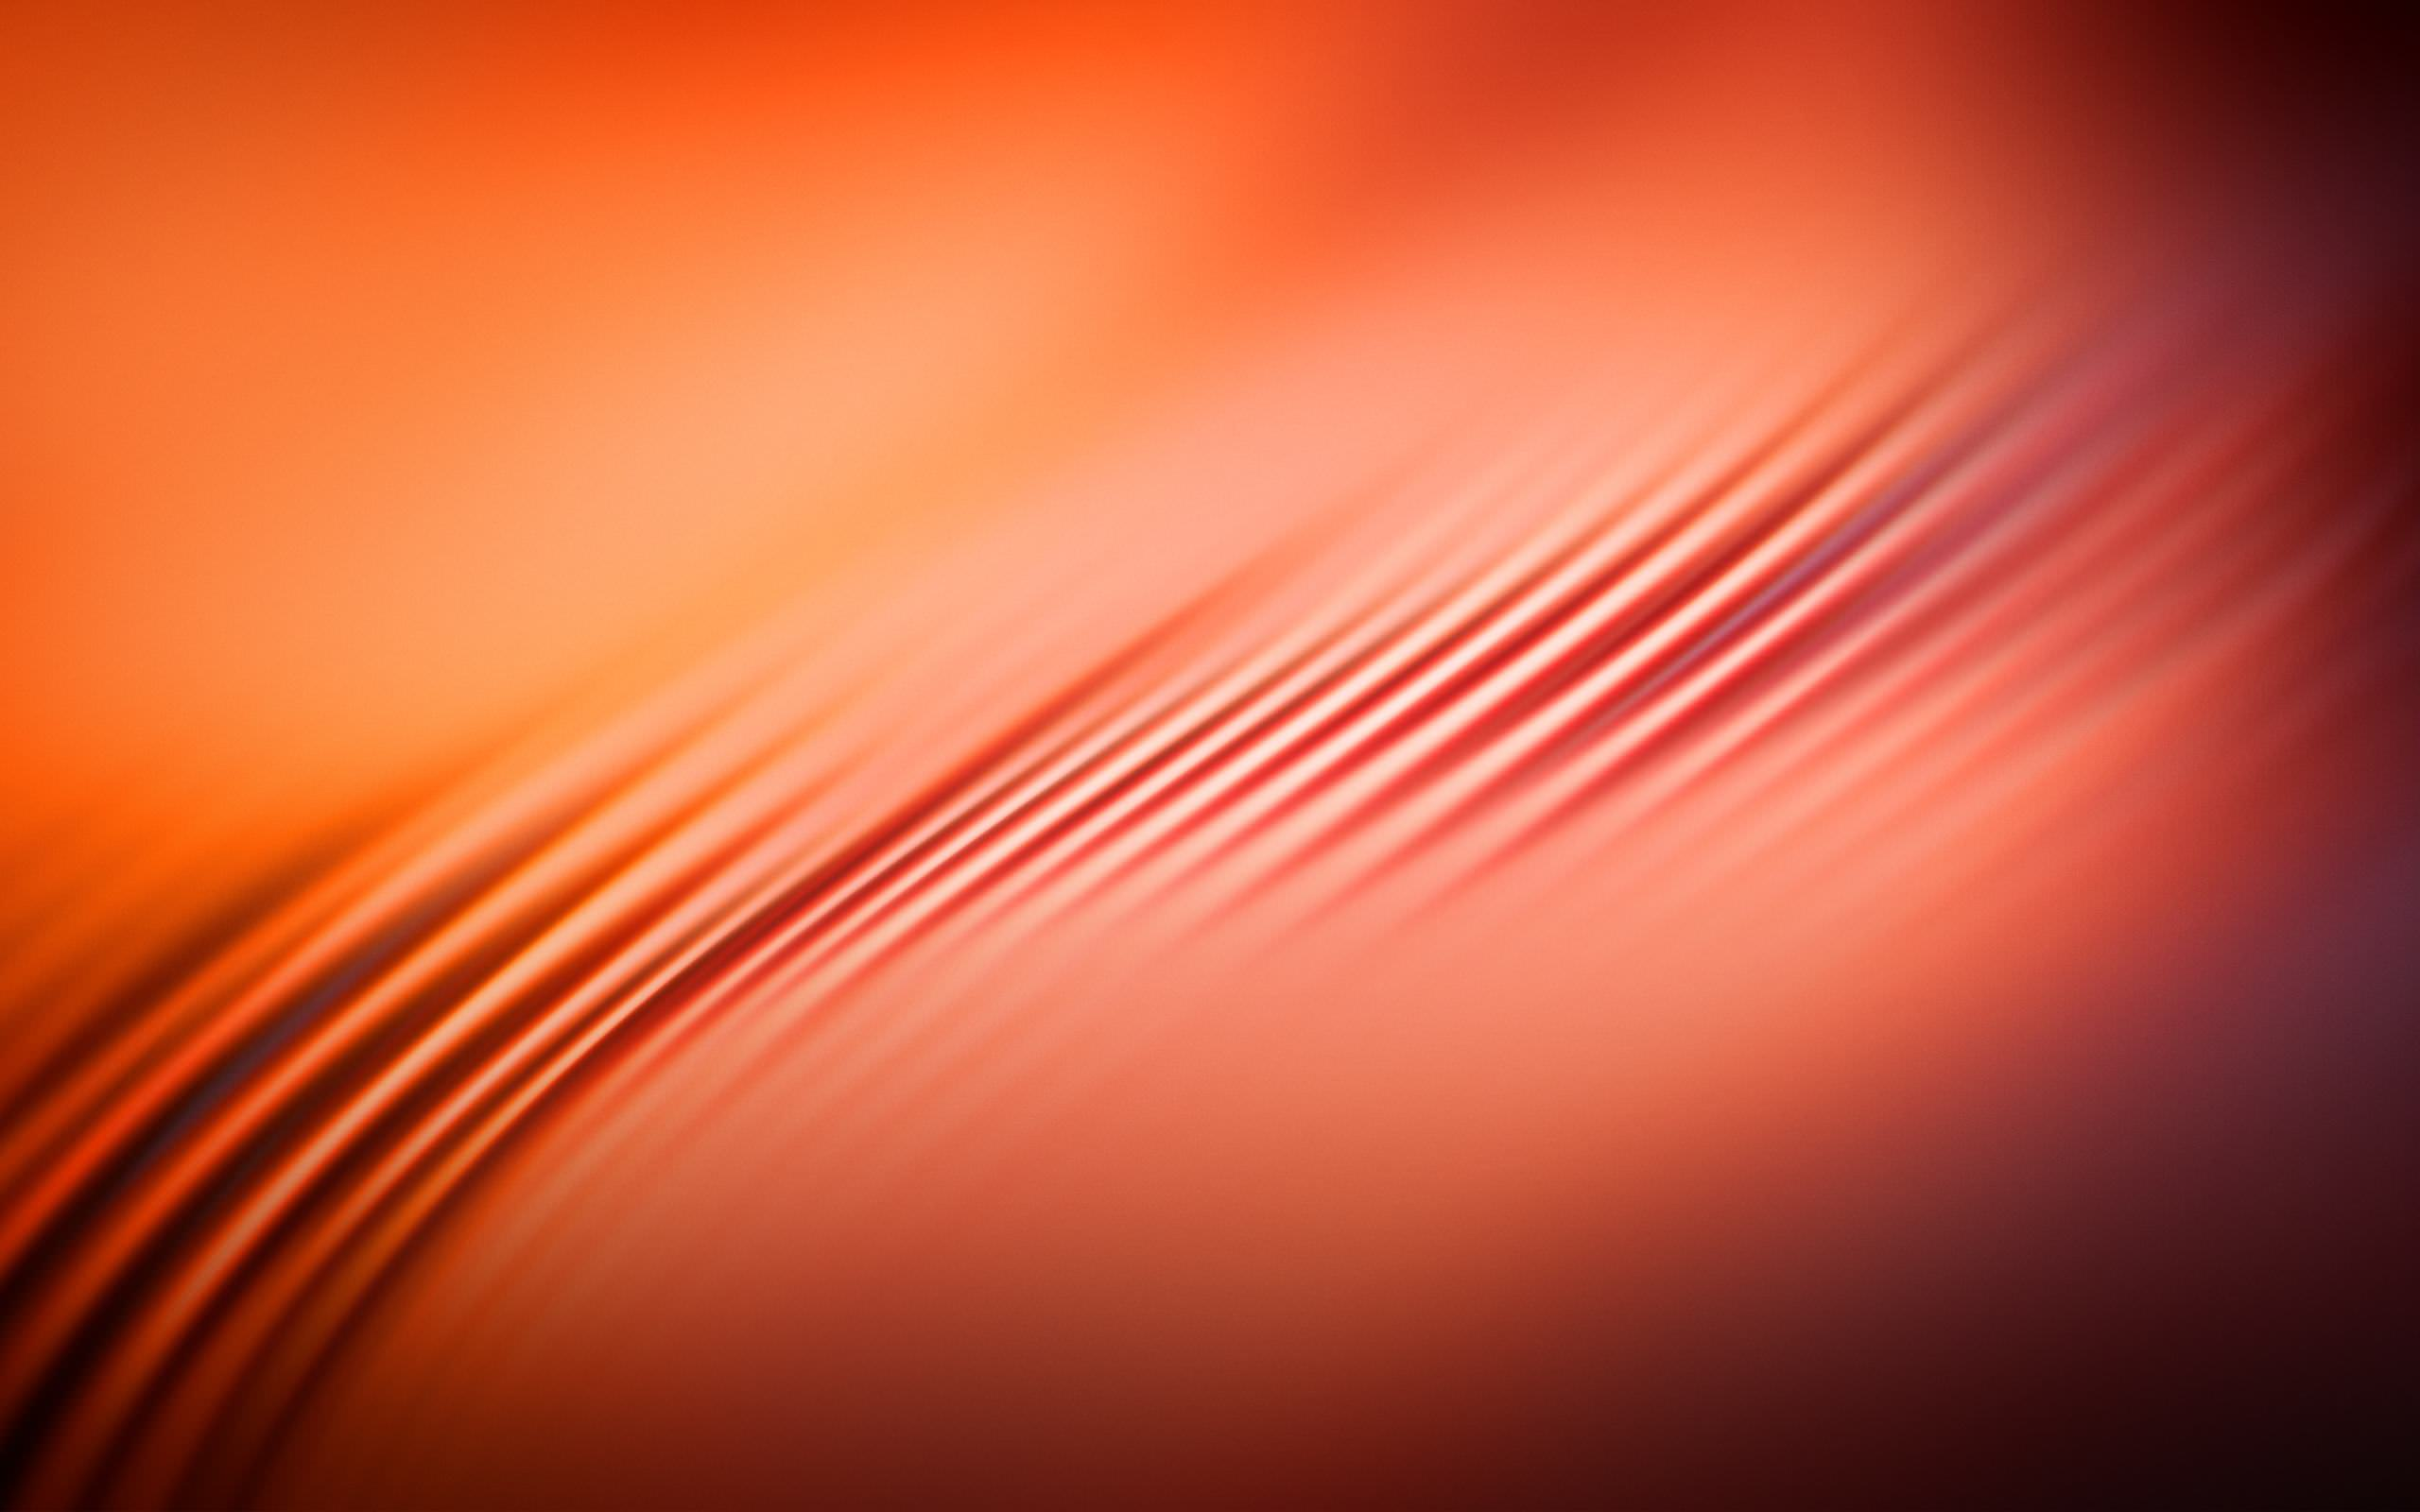 Light Orange Plain Background